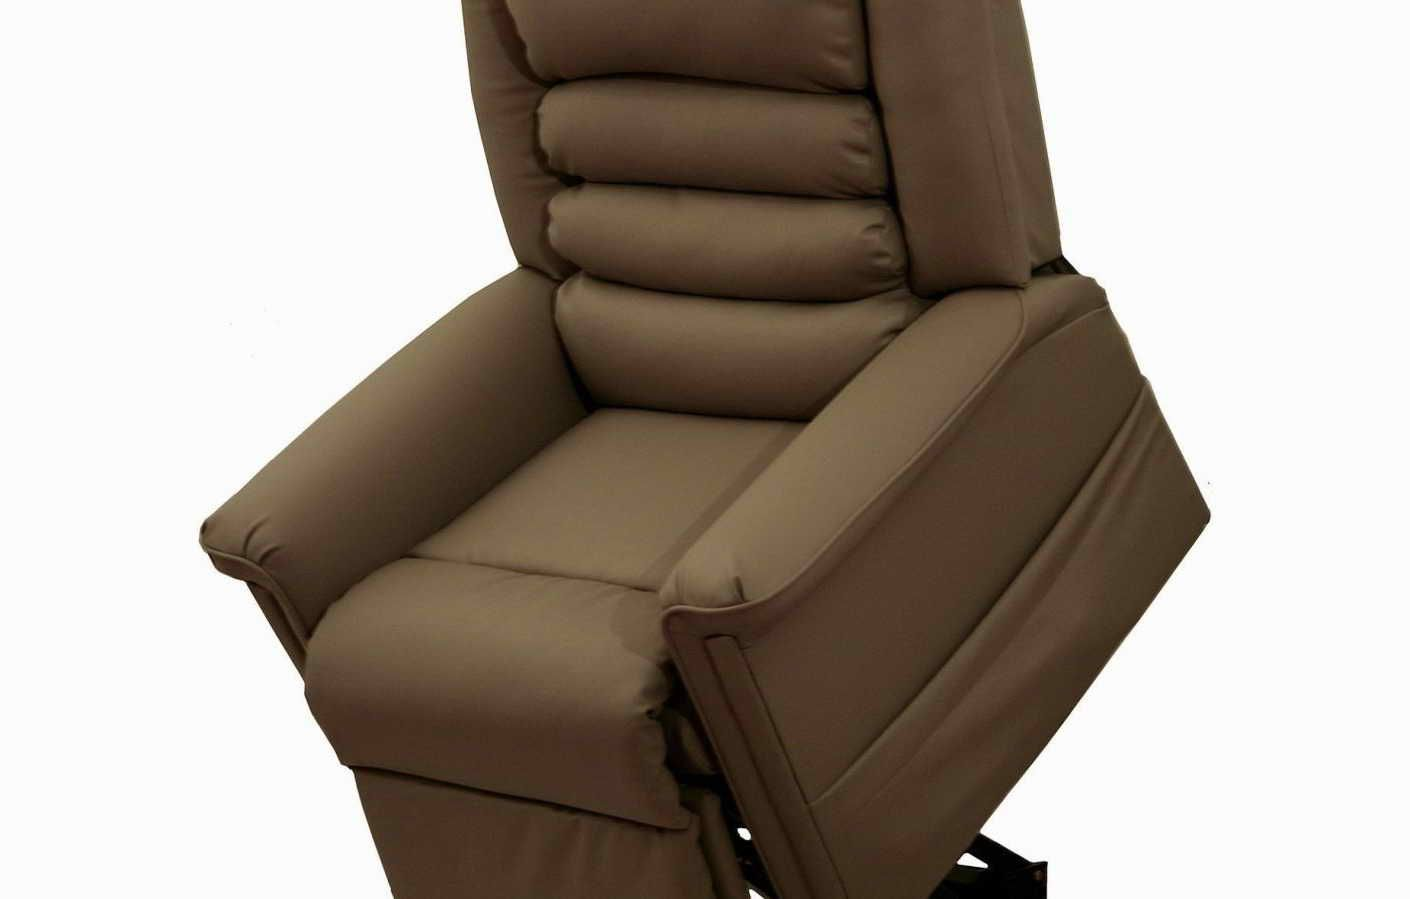 Does Medicare Cover Lift Chairs Medical Lift Chairs Covered By Medicare Chairs Buying Guide